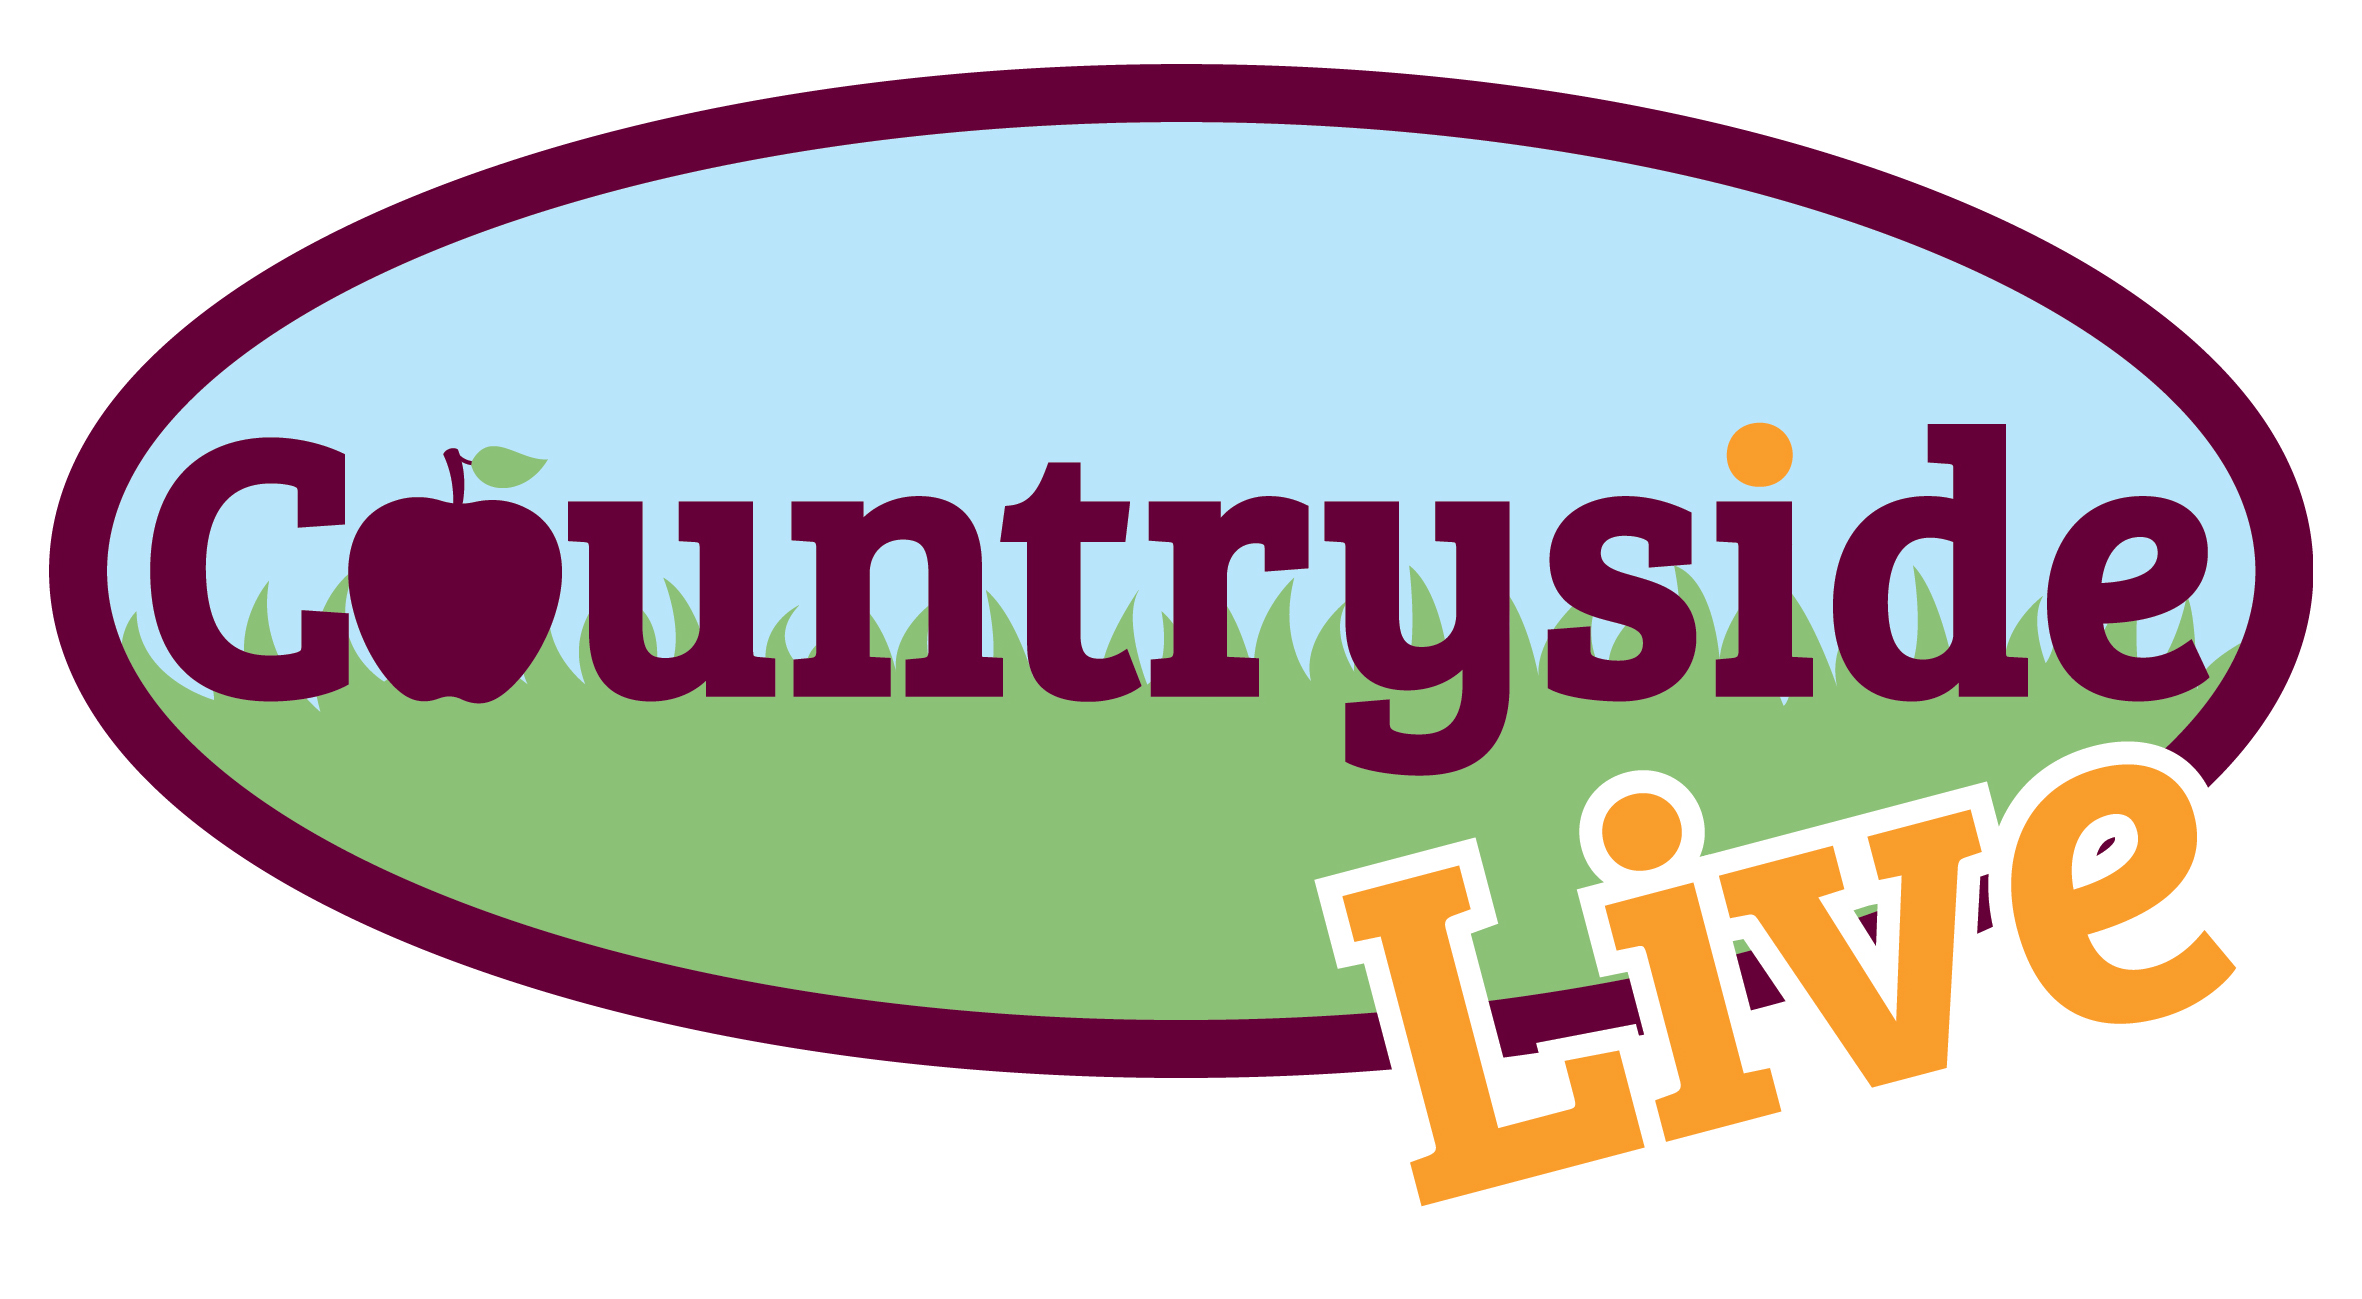 9:15am: Family ticket to Countryside Live